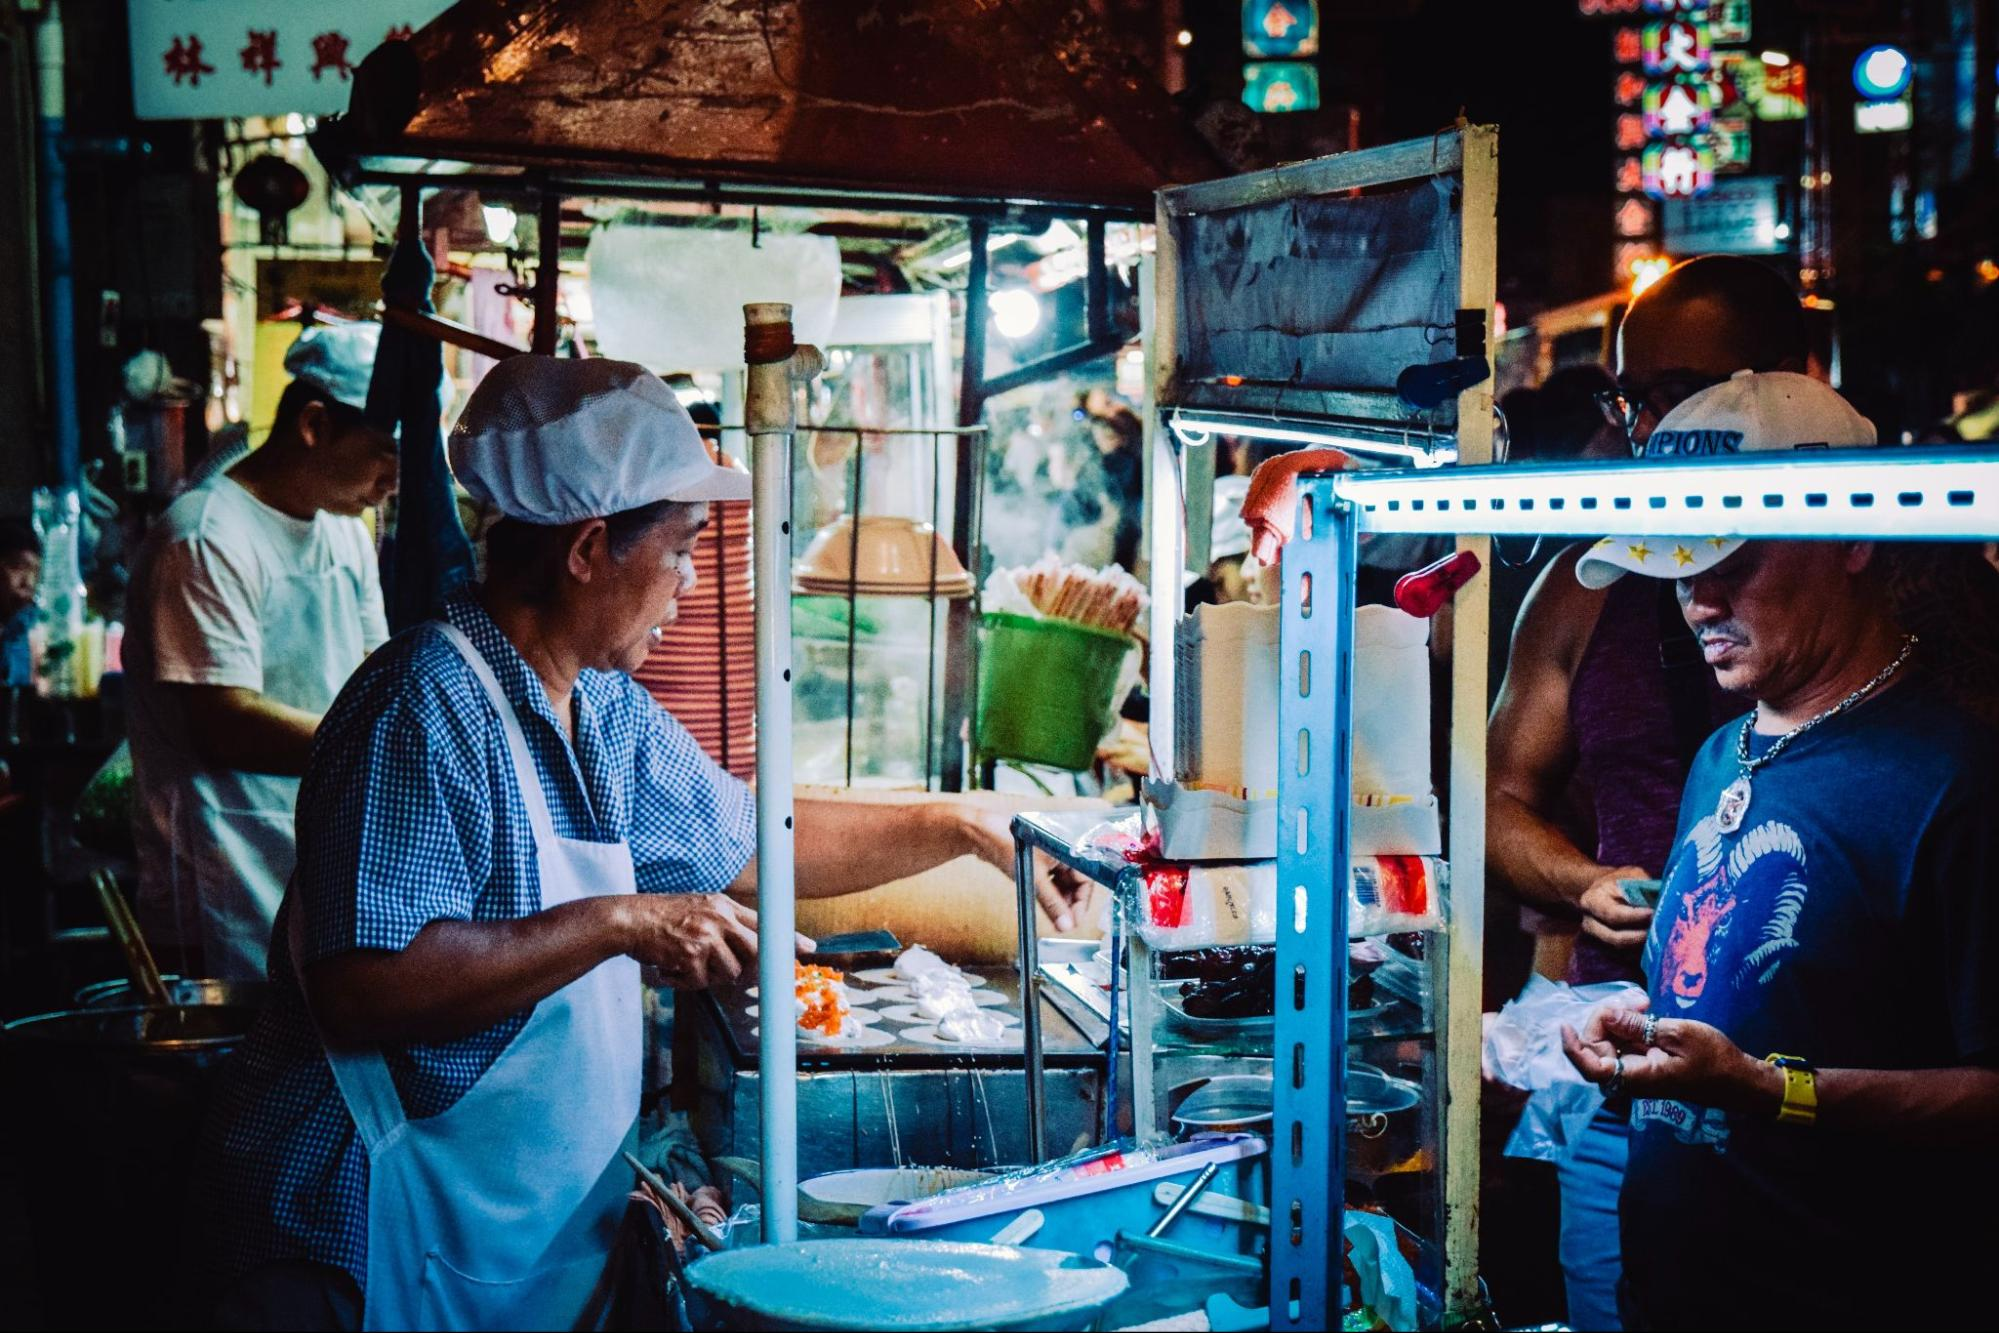 Street Food Stall in Chiang Mai